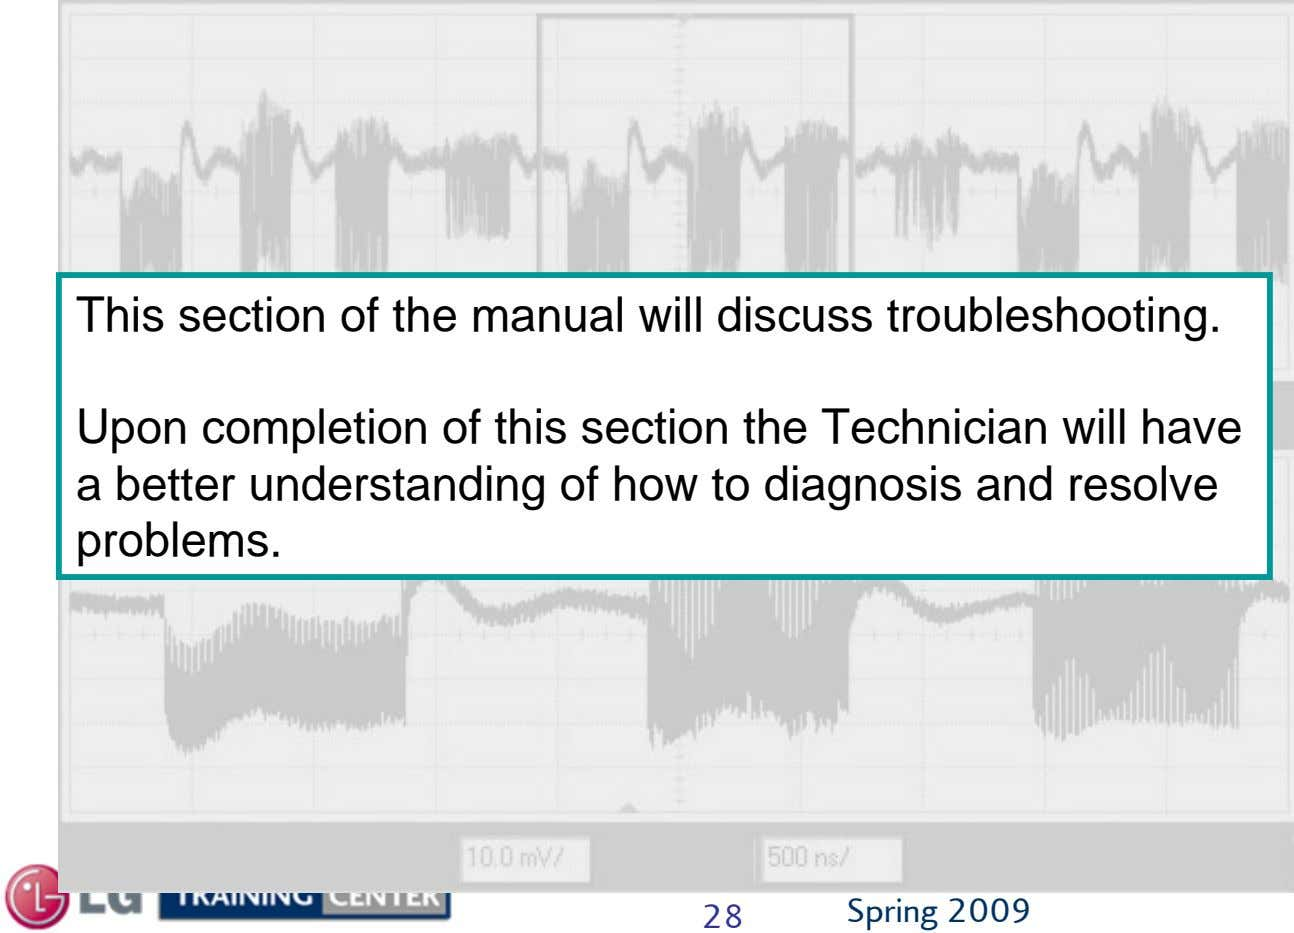 This section of the manual will discuss troubleshooting. Upon completion of this section the Technician